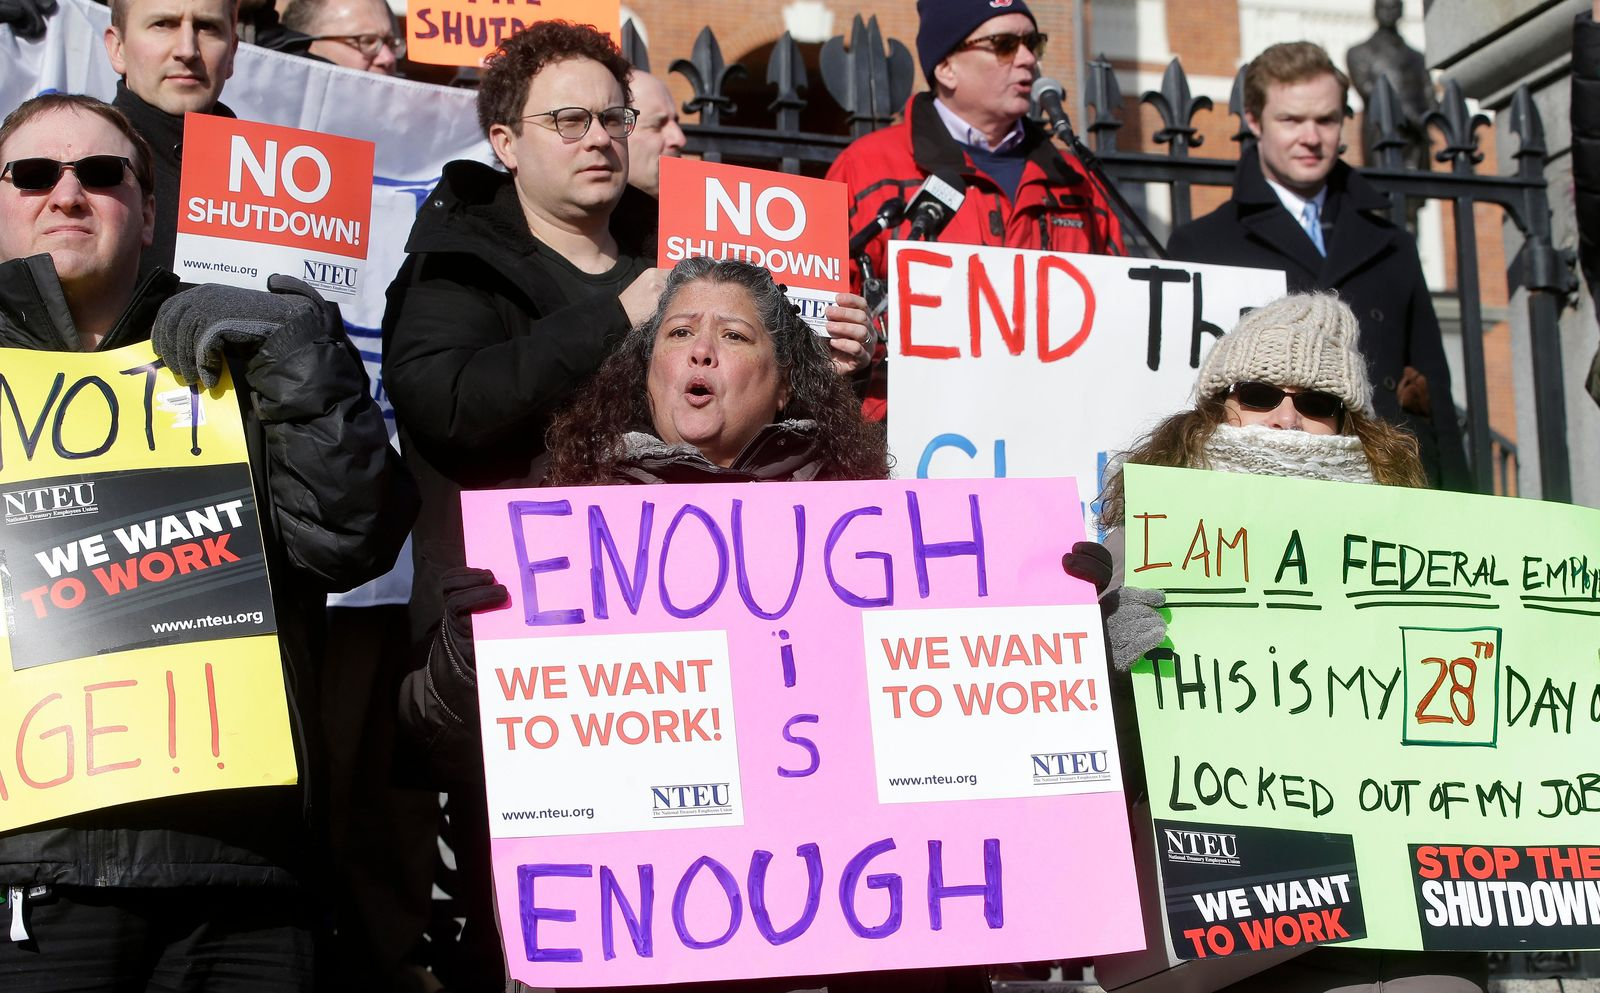 Internal Revenue Service employees, front row from the left, Brian Lanouette, of Merrimack, N.H., Mary Maldonado, of Dracut, Mass., and Maria Zangari, of Haverhill, Mass., display placards during a rally by federal employees and supporters, Thursday, Jan. 17, 2019, in front of the Statehouse, in Boston, held to call for an end of the partial shutdown of the federal government. (AP Photo/Steven Senne)